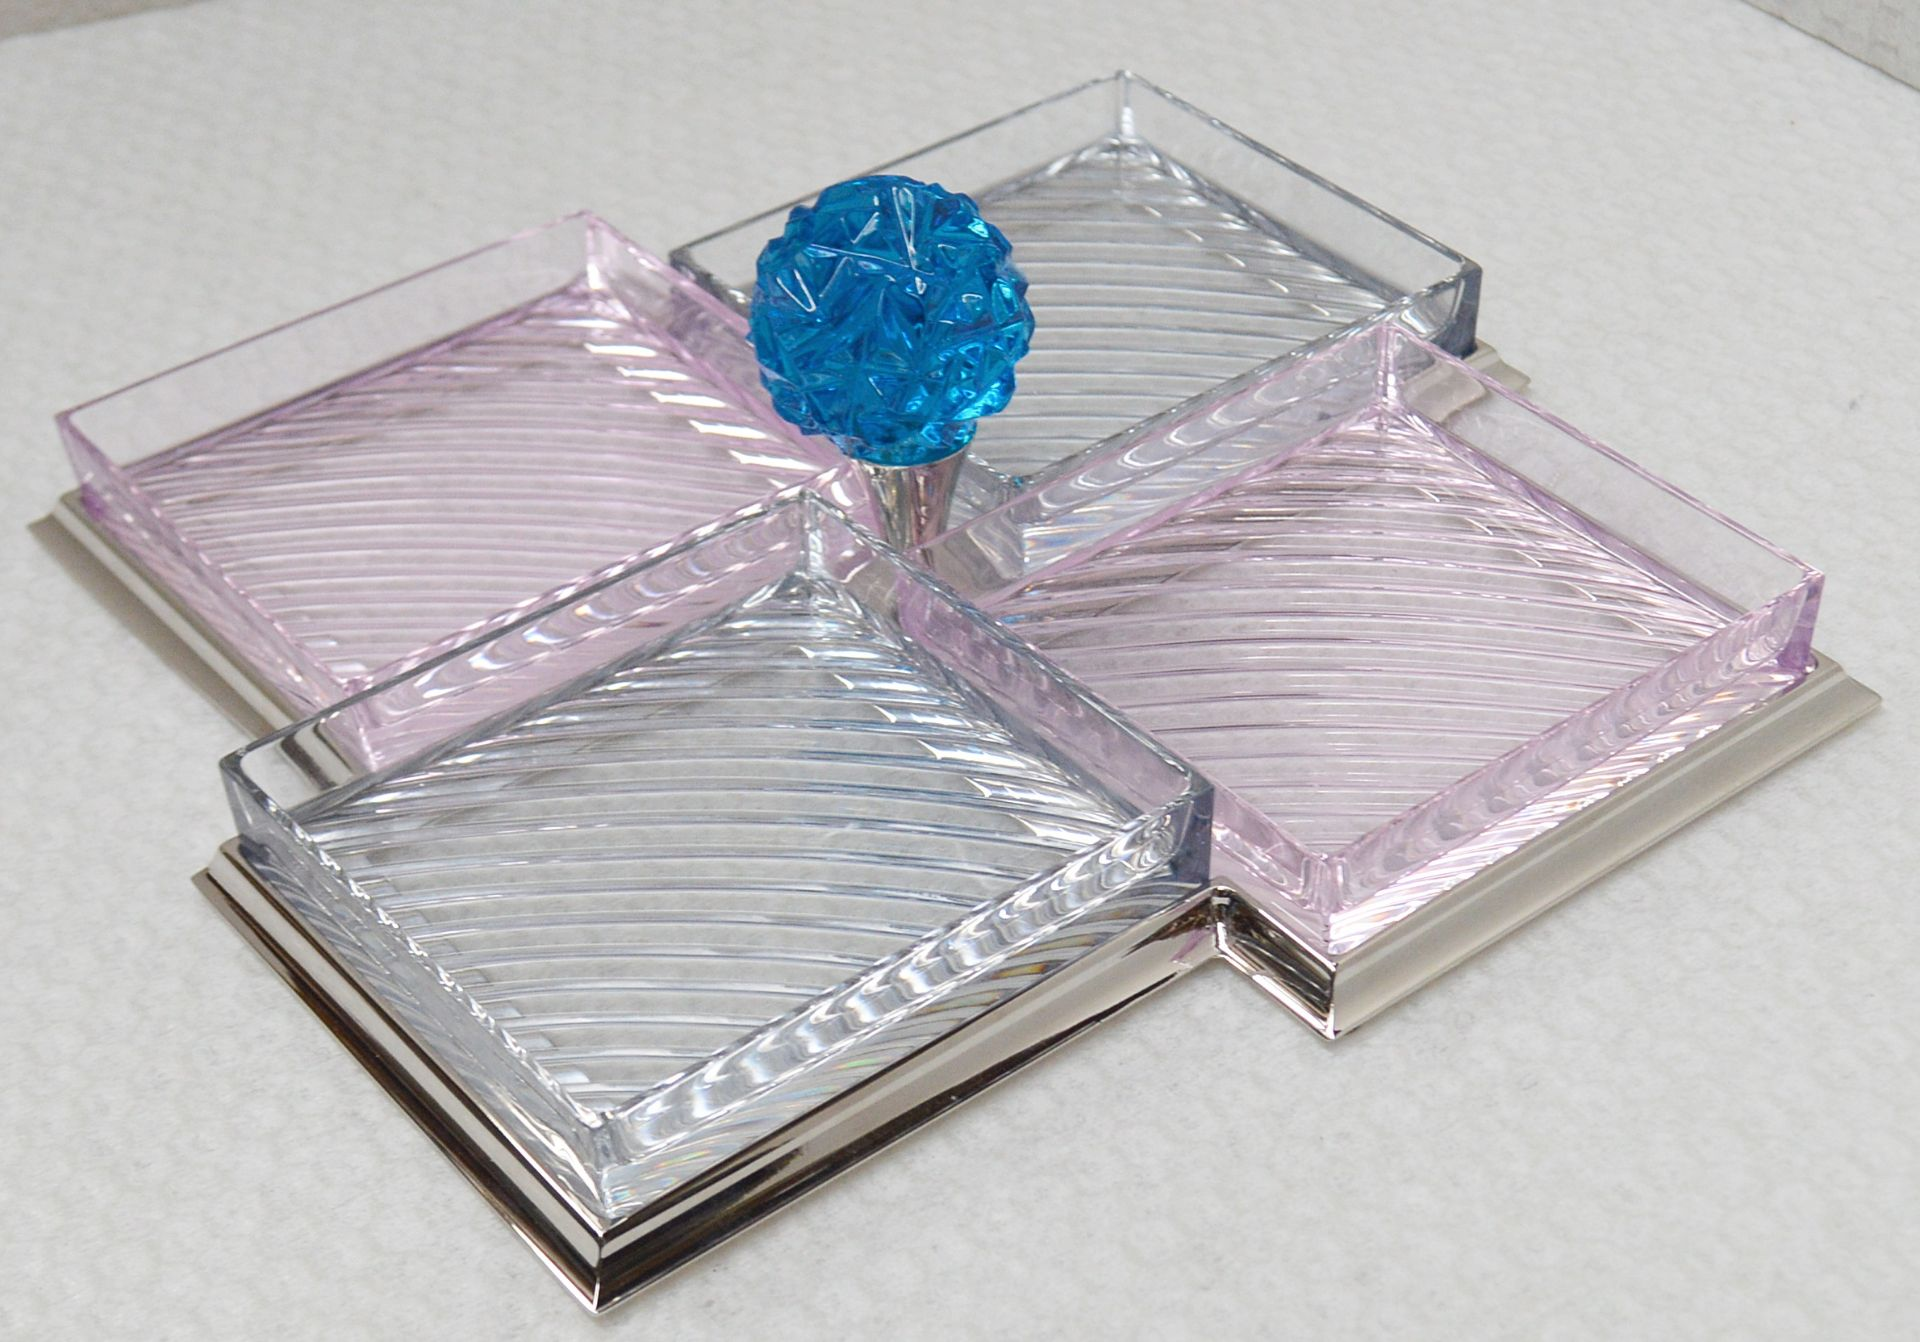 1 x BALDI 'Home Jewels' Italian Hand-crafted Artisan Glass 4-Dish Serving Trays In Smoke And Pink - Image 2 of 3